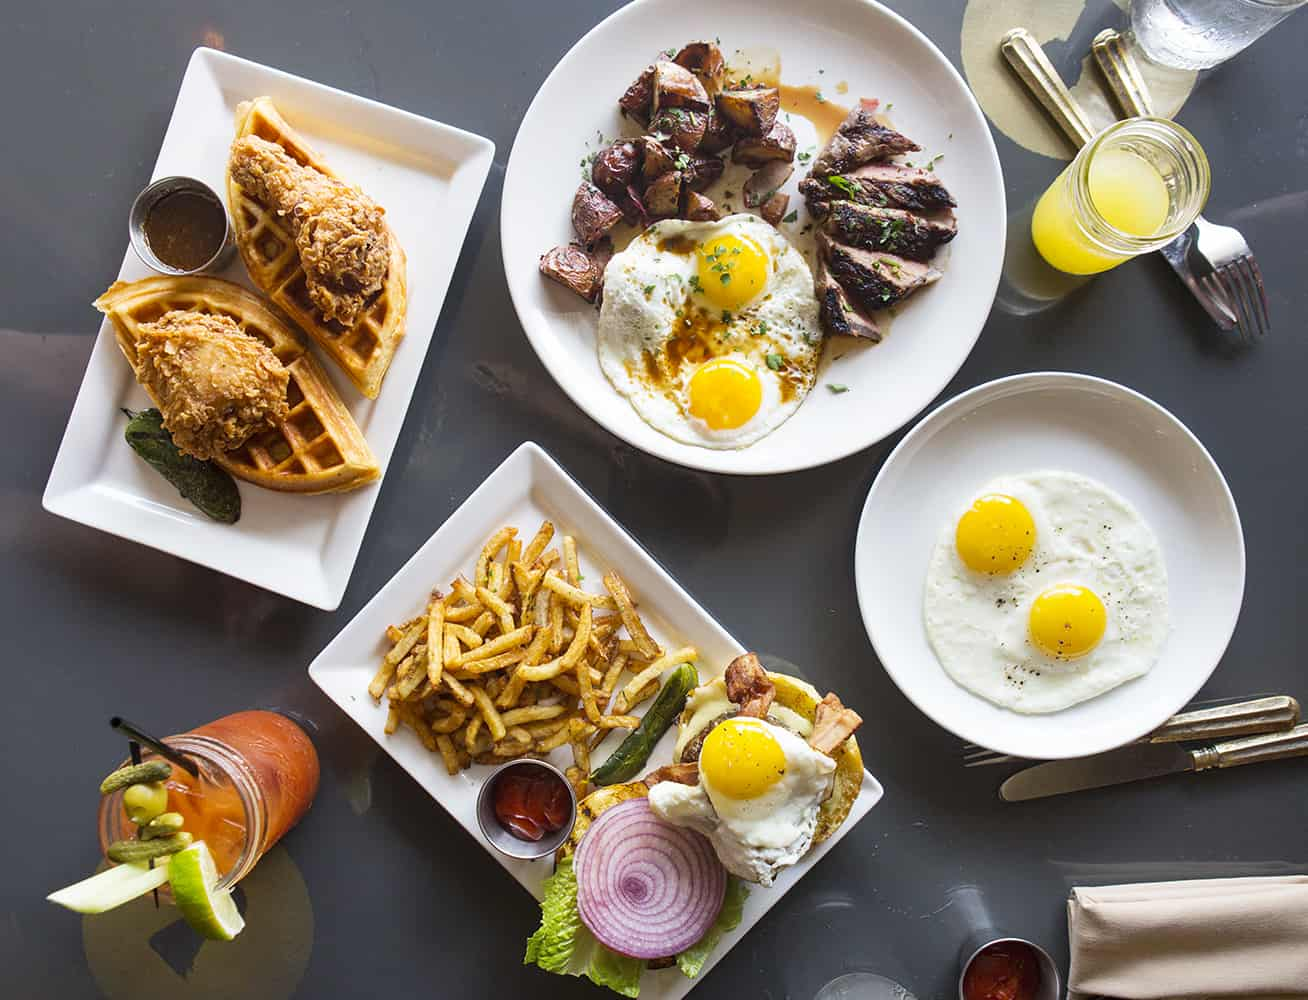 Weekend Brunch At Little Barrel And Brown